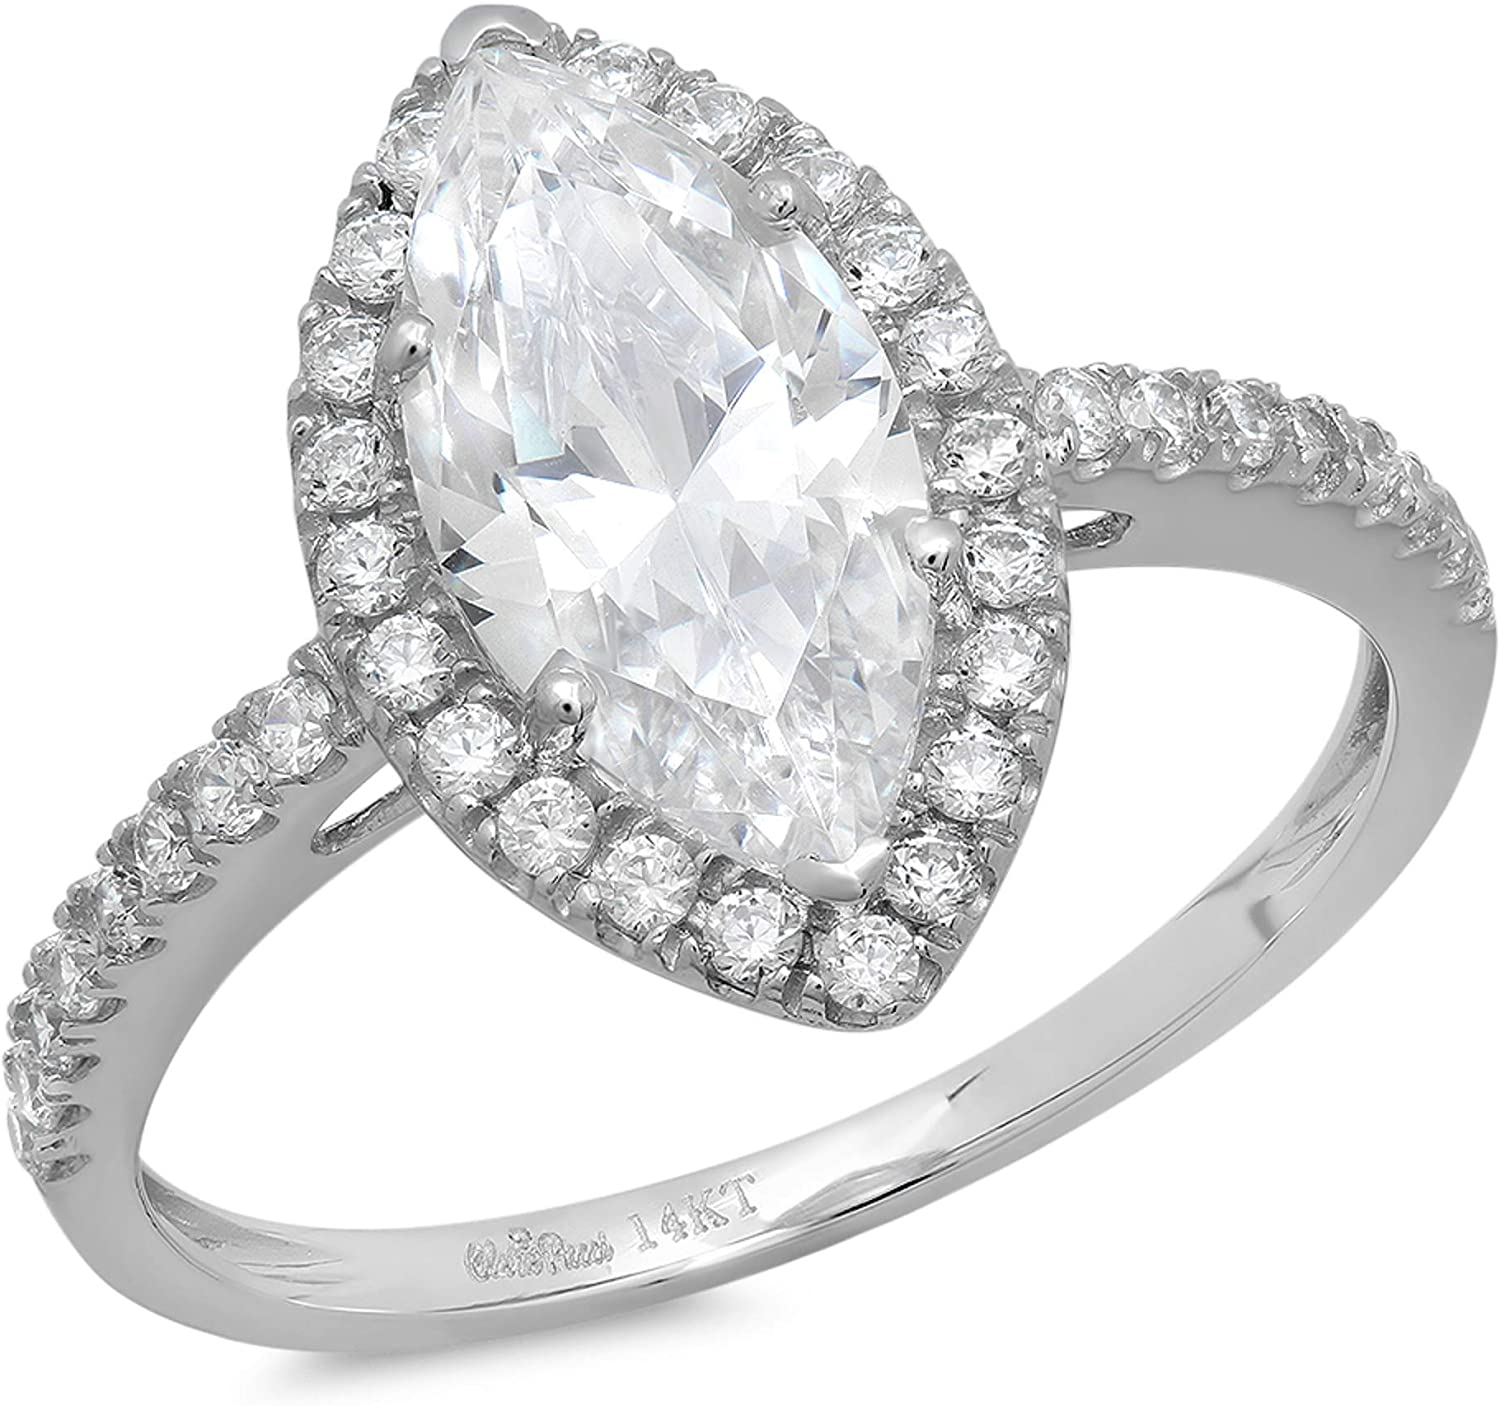 2.35ct Brilliant Marquise Cut Solitaire with Accent Halo Stunning Genuine White lab created Sapphire Ideal VVS1 D & Simulated Diamond Designer Modern Statement Ring Solid 14k White Gold Clara Pucci